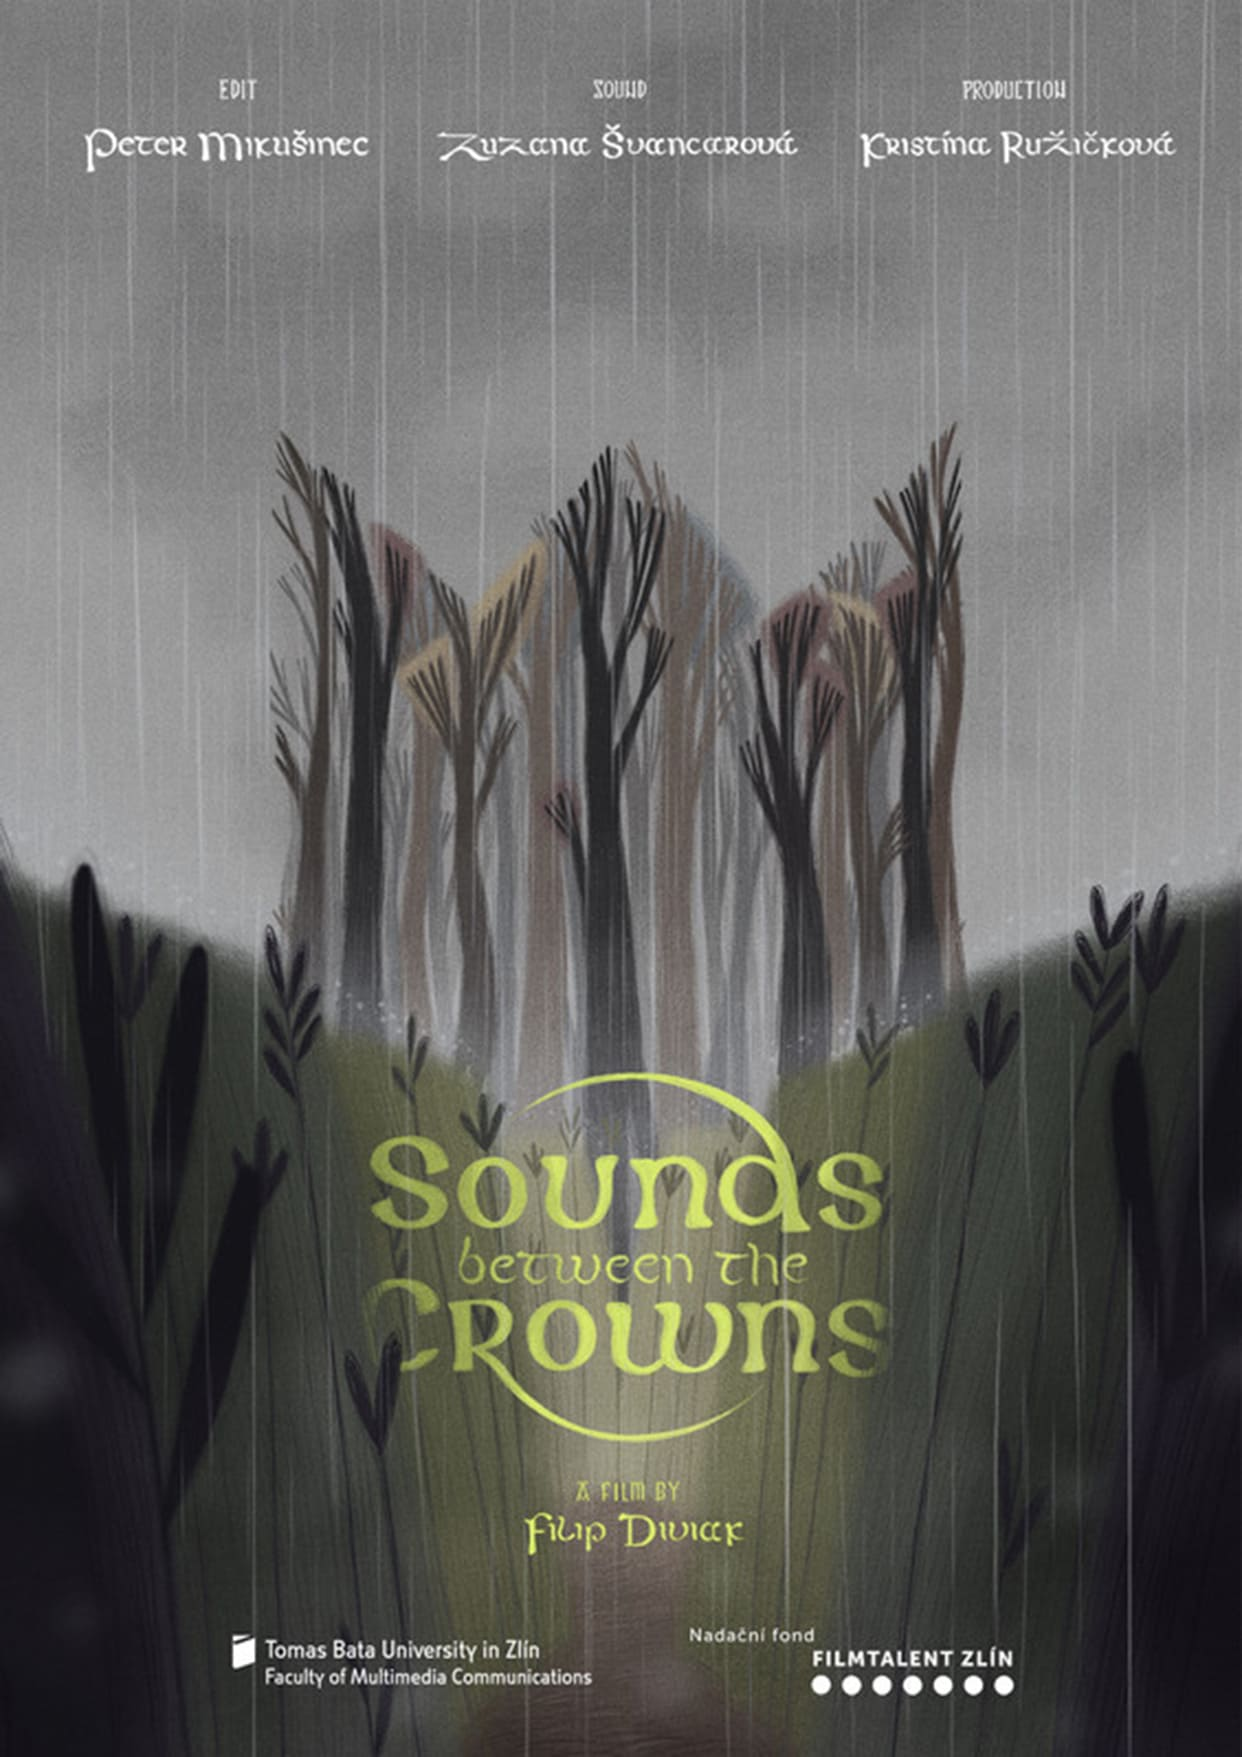 Sounds between the crowns